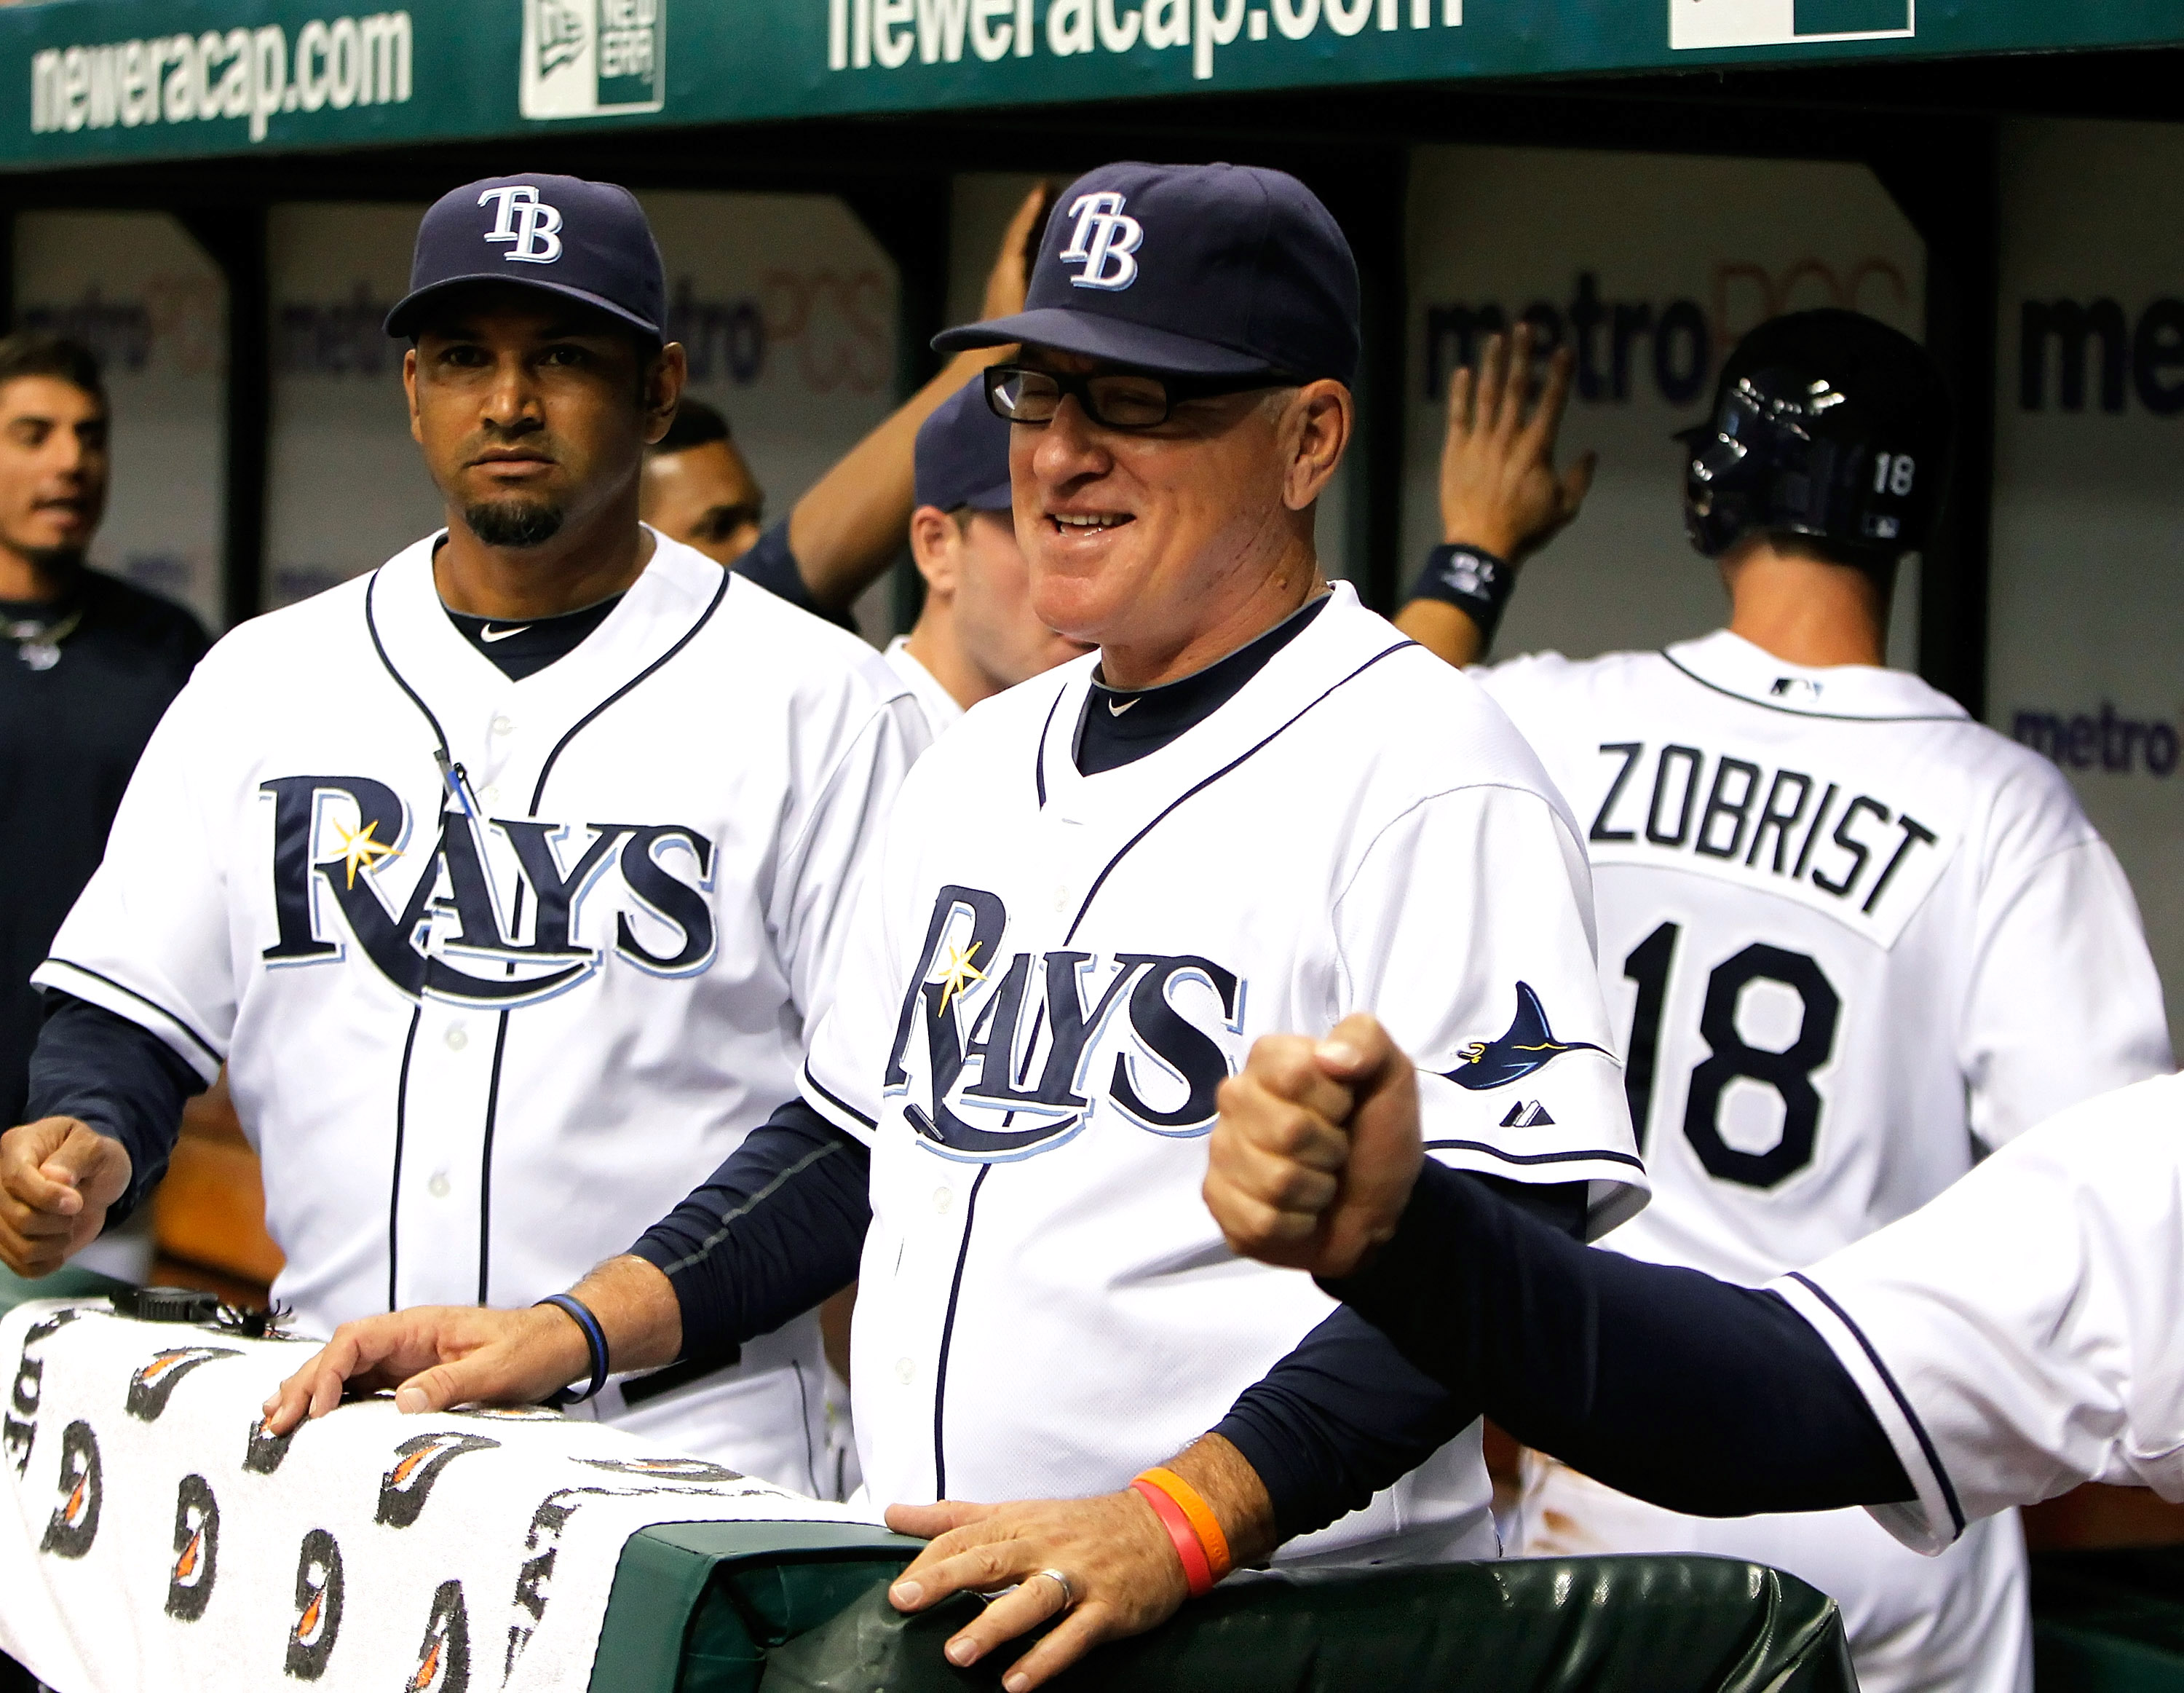 ST. PETERSBURG - AUGUST 31:  Manager Joe Maddon #70 of the Tampa Bay Rays smiles after his team scored a run against the Toronto Blue Jays during the game at Tropicana Field on August 31, 2010 in St. Petersburg, Florida.  (Photo by J. Meric/Getty Images)